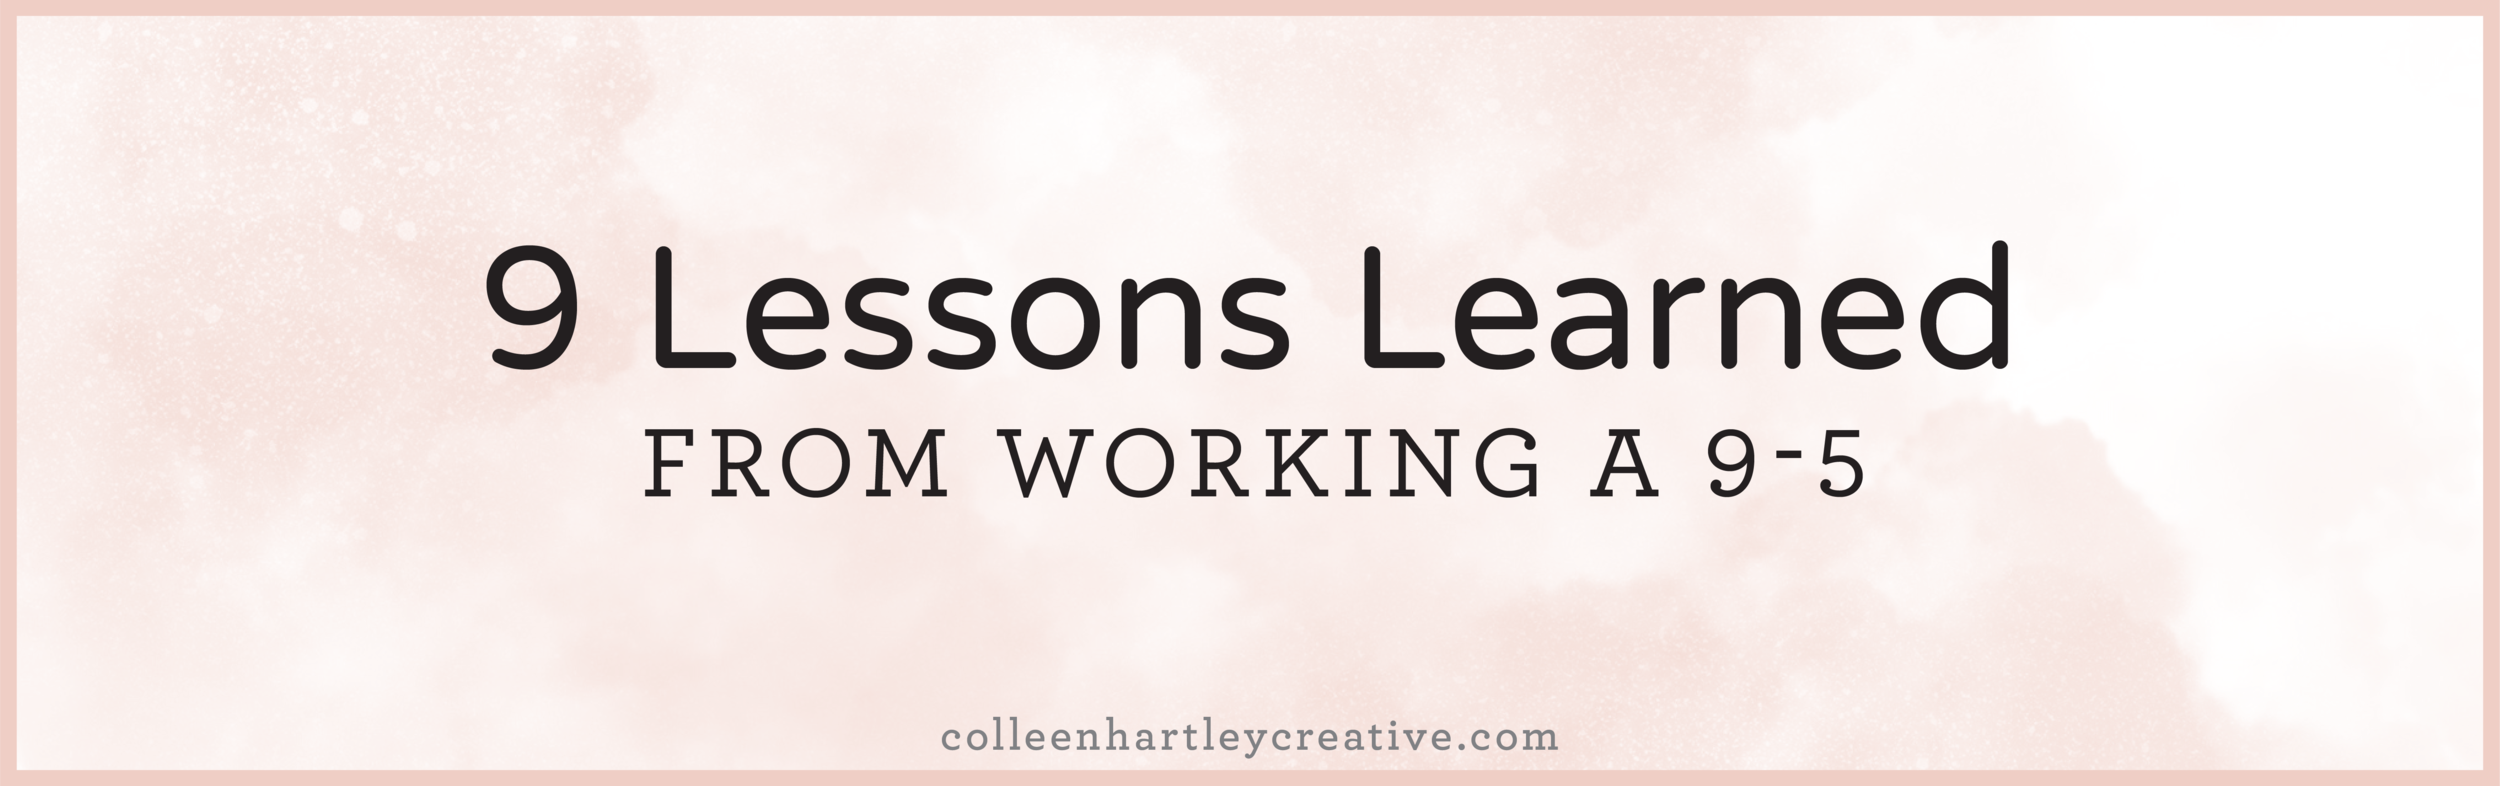 9_Lessons_featured_image.png